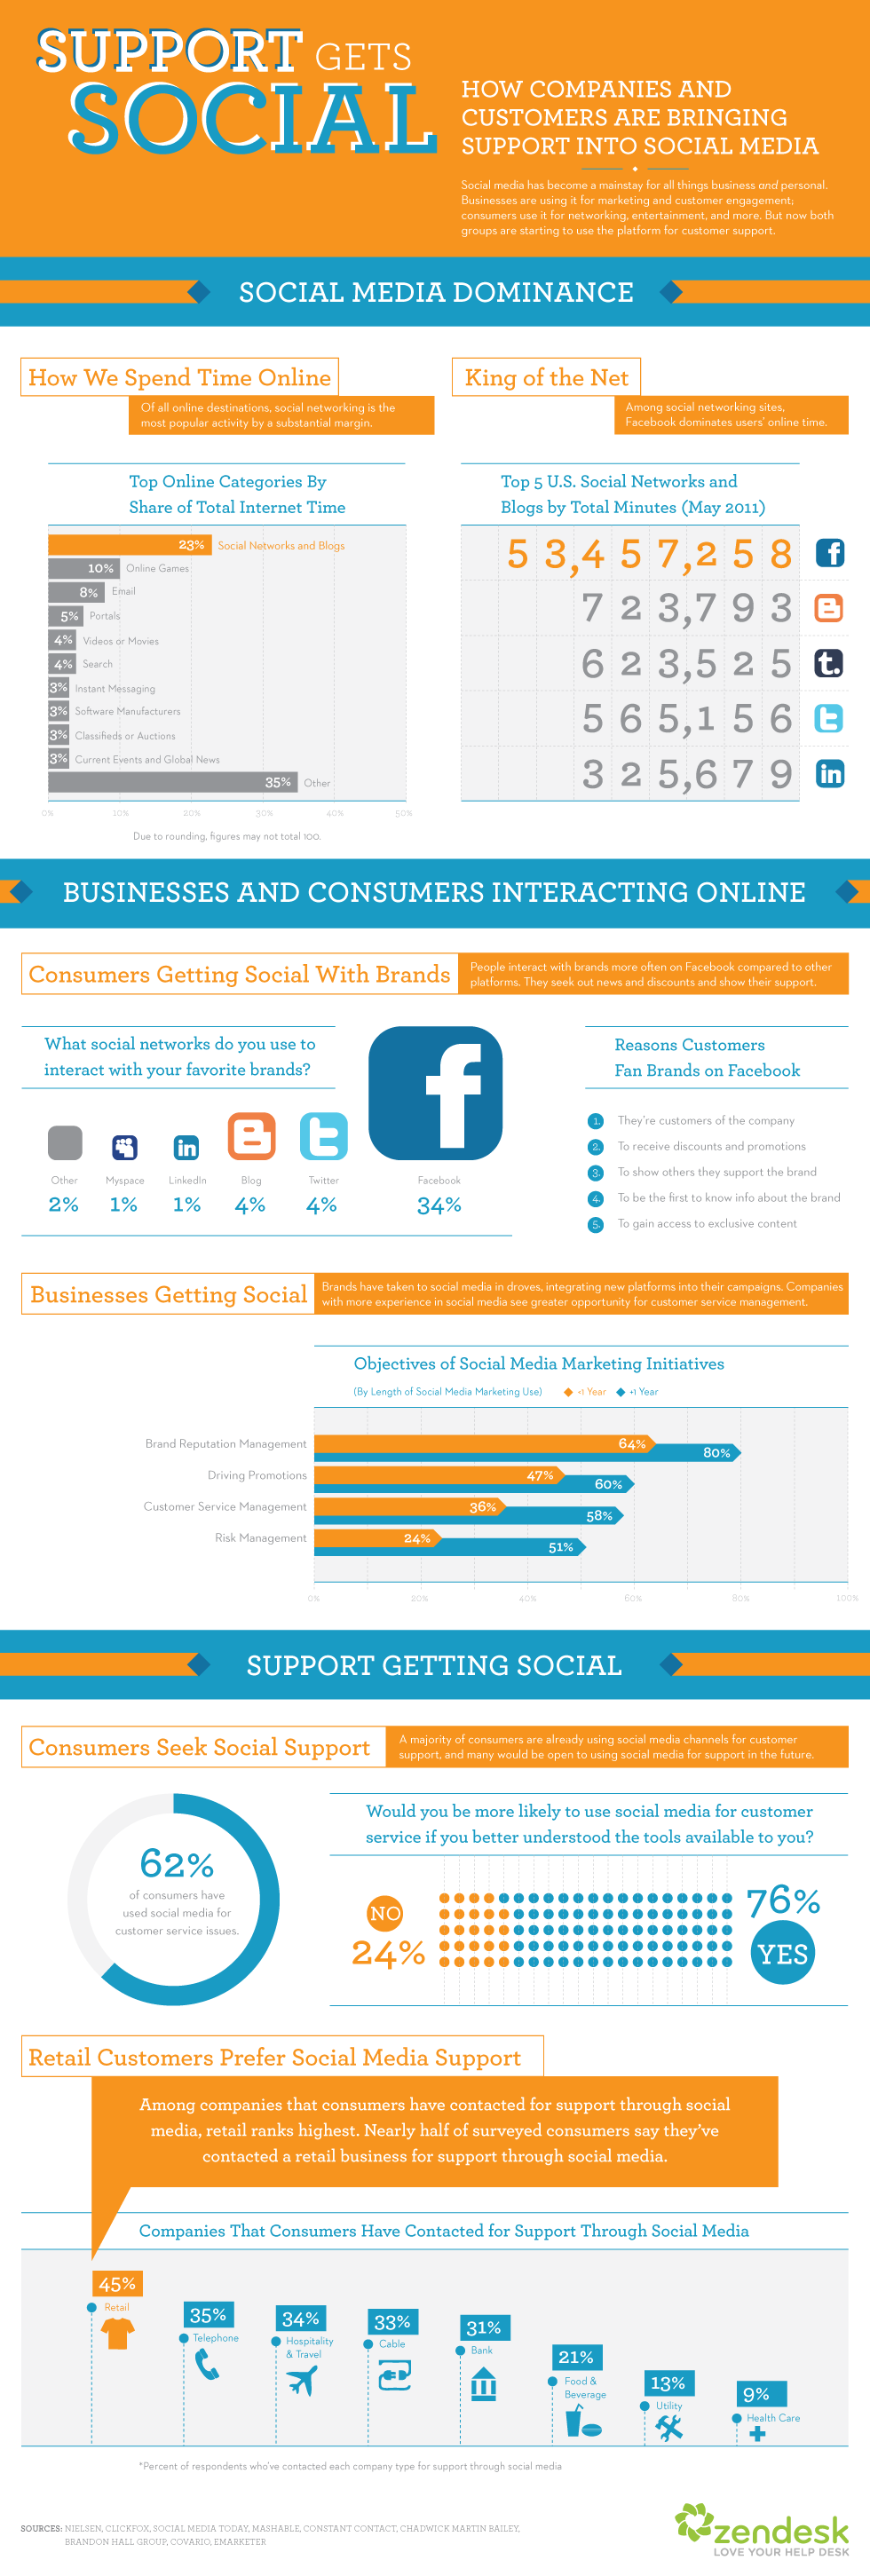 Support Gets Social: Bringing Customer Support Into Social Media